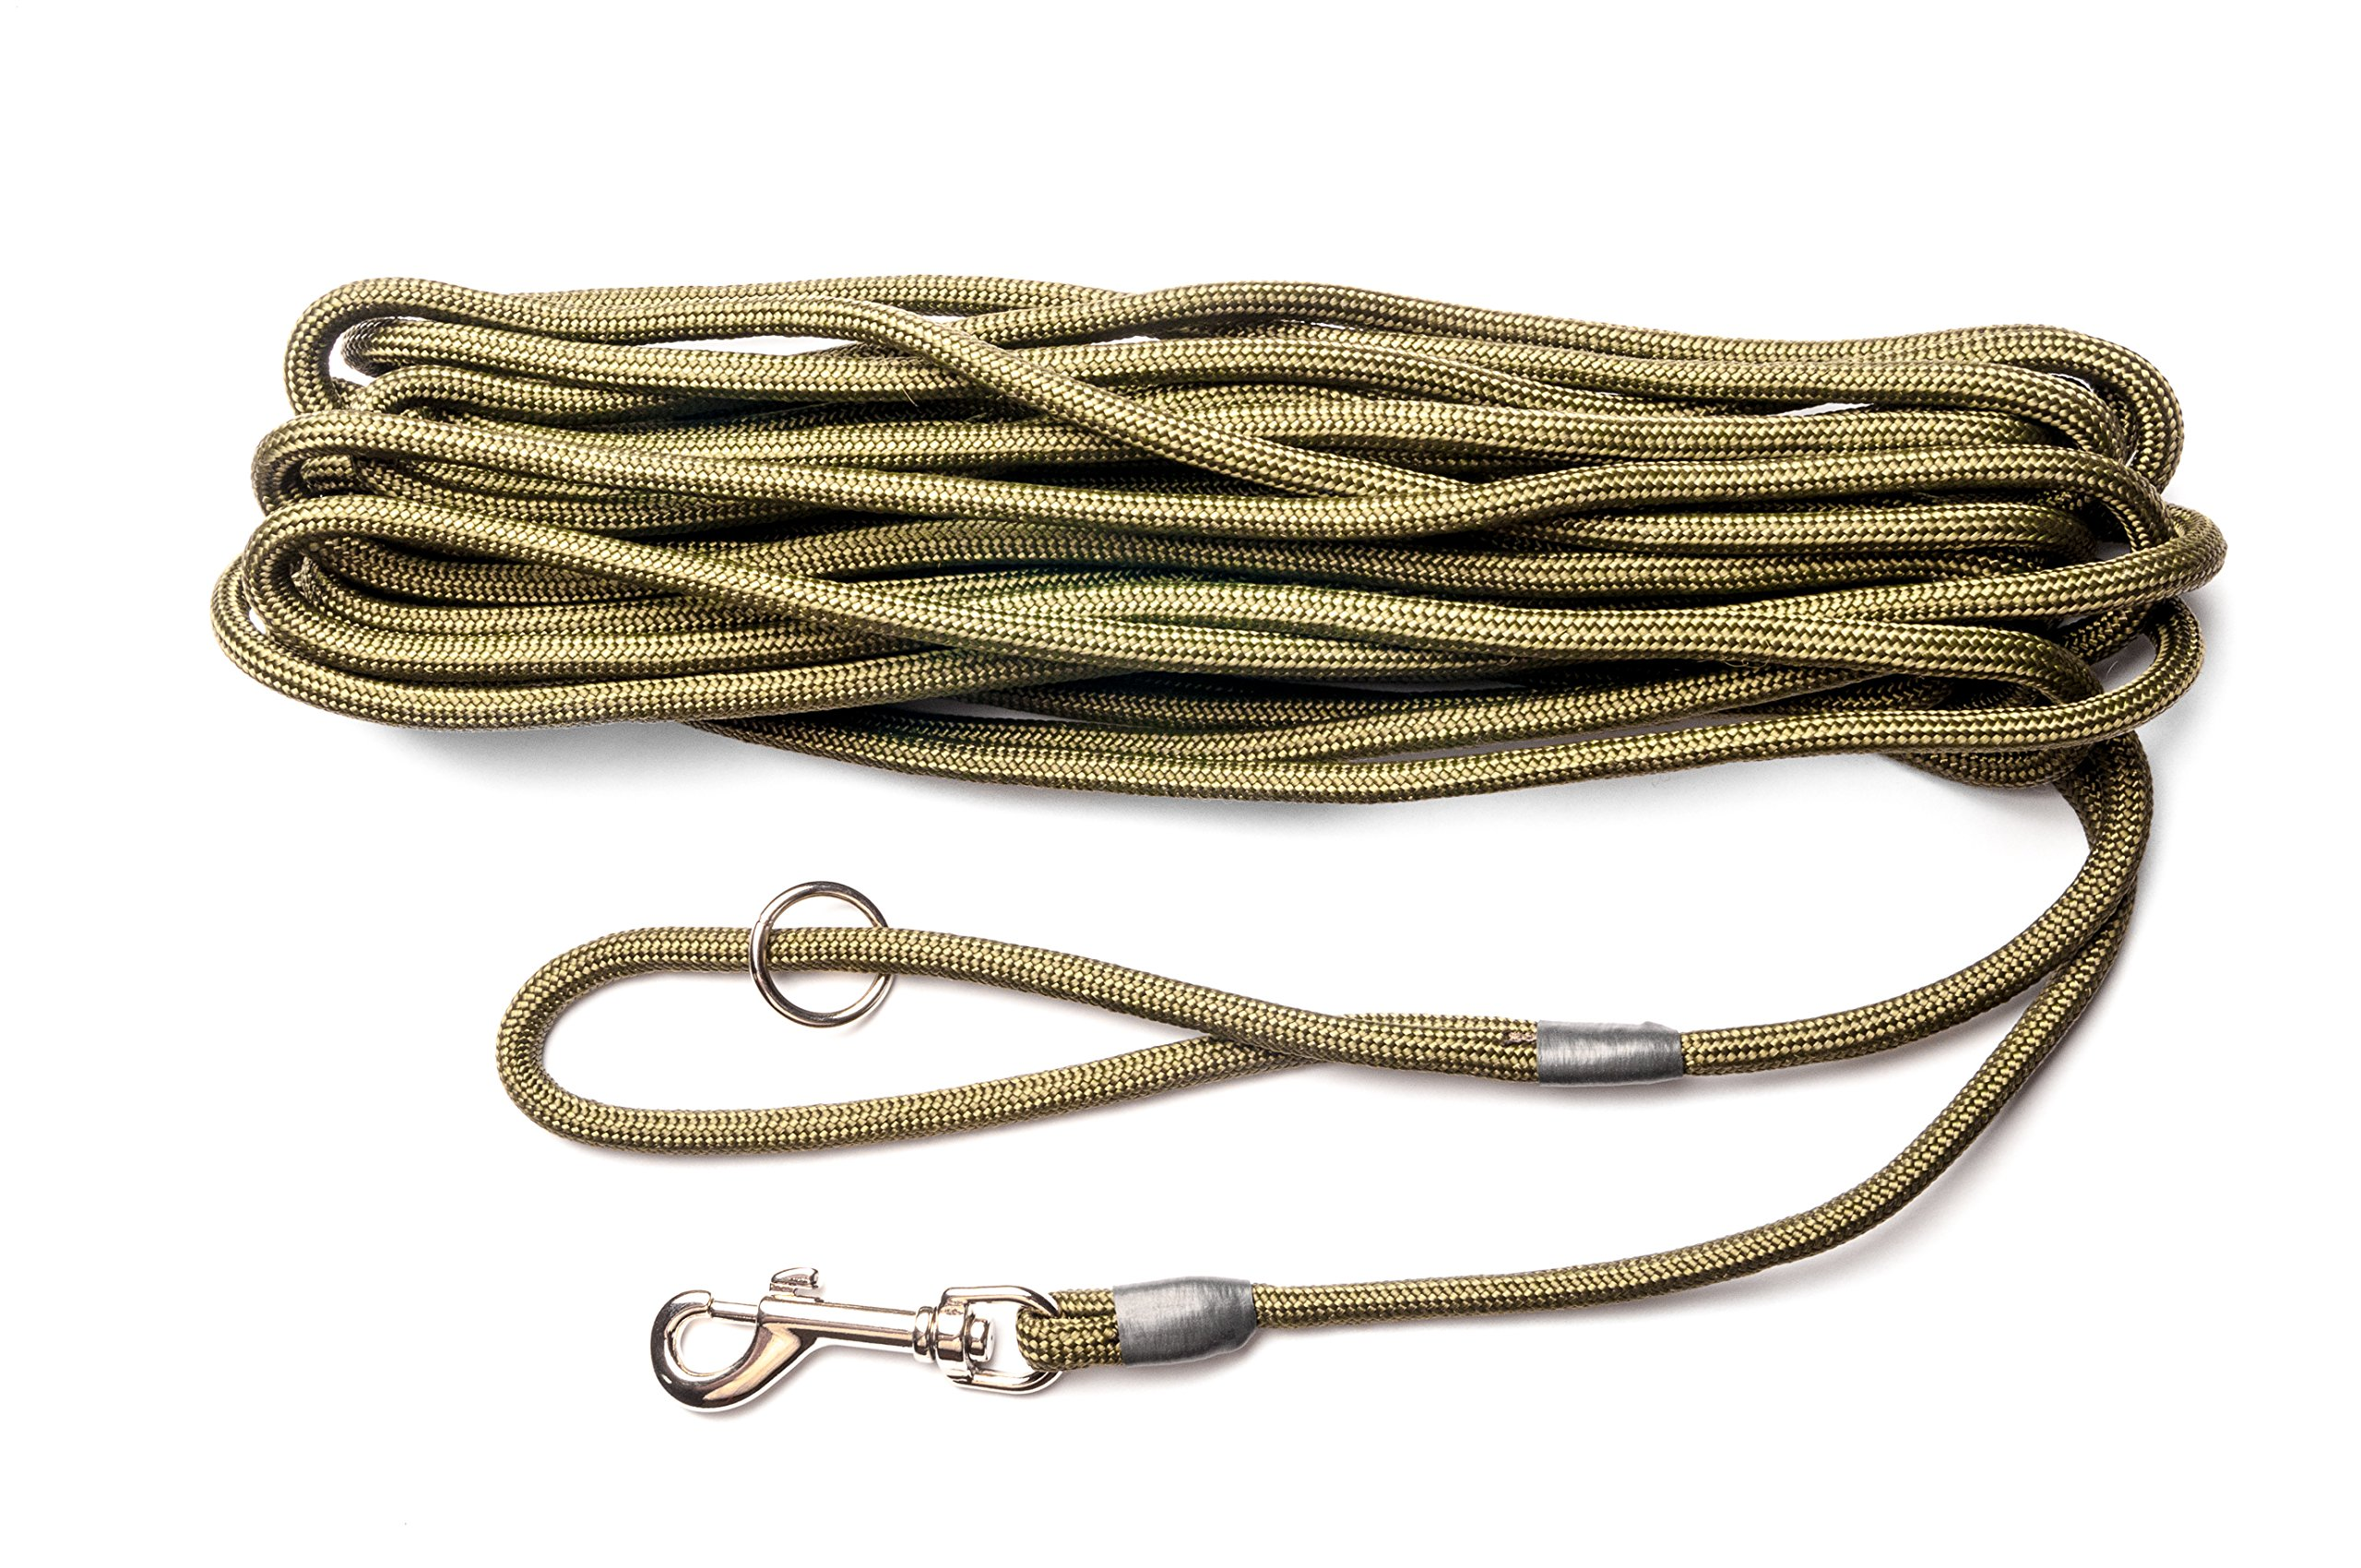 Dog & Field 2in1 10 Meter Training/Exercise Dog Lead – Super Soft Braided Nylon